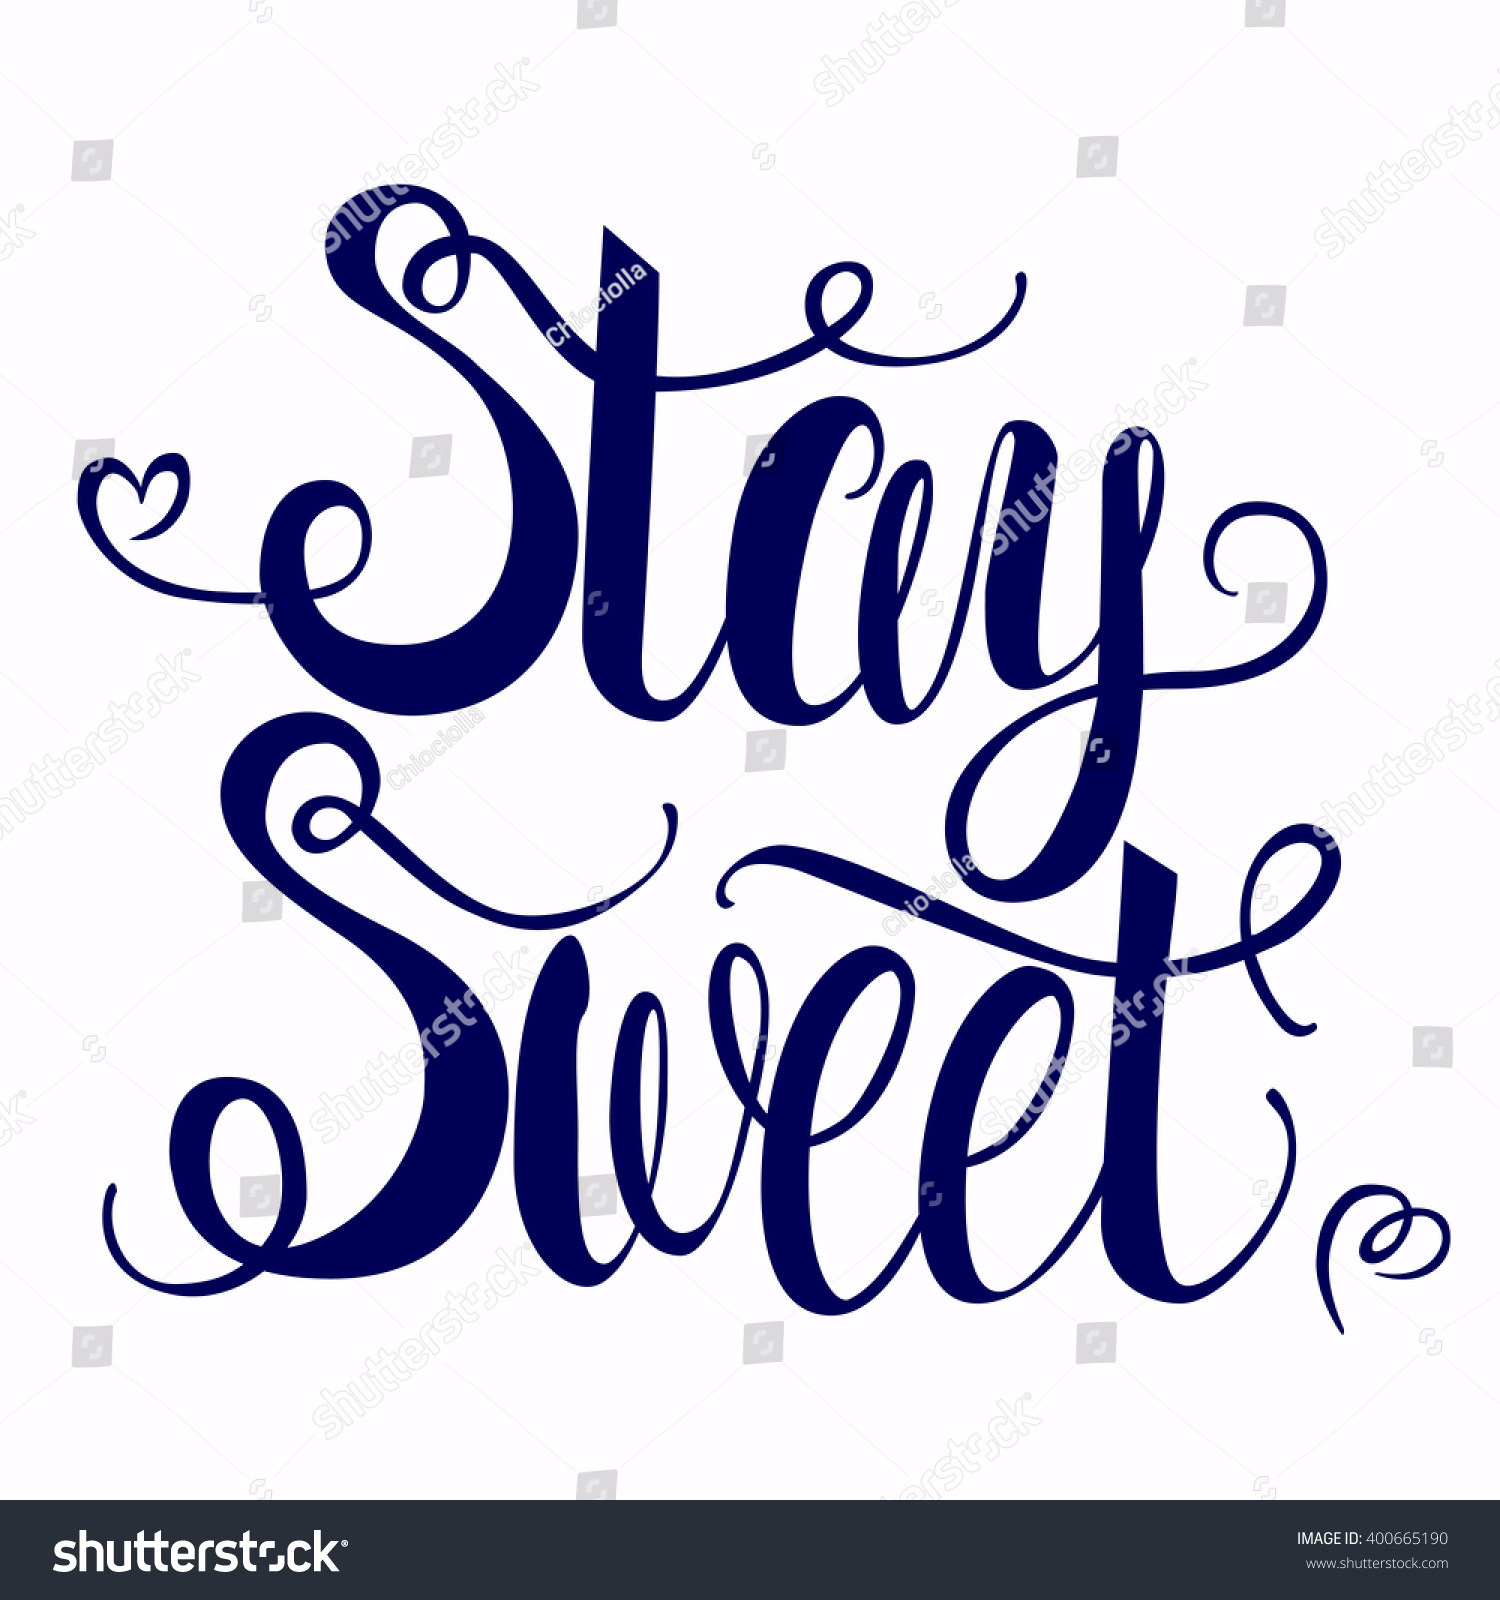 Poster modern calligraphy stay sweet stock vector